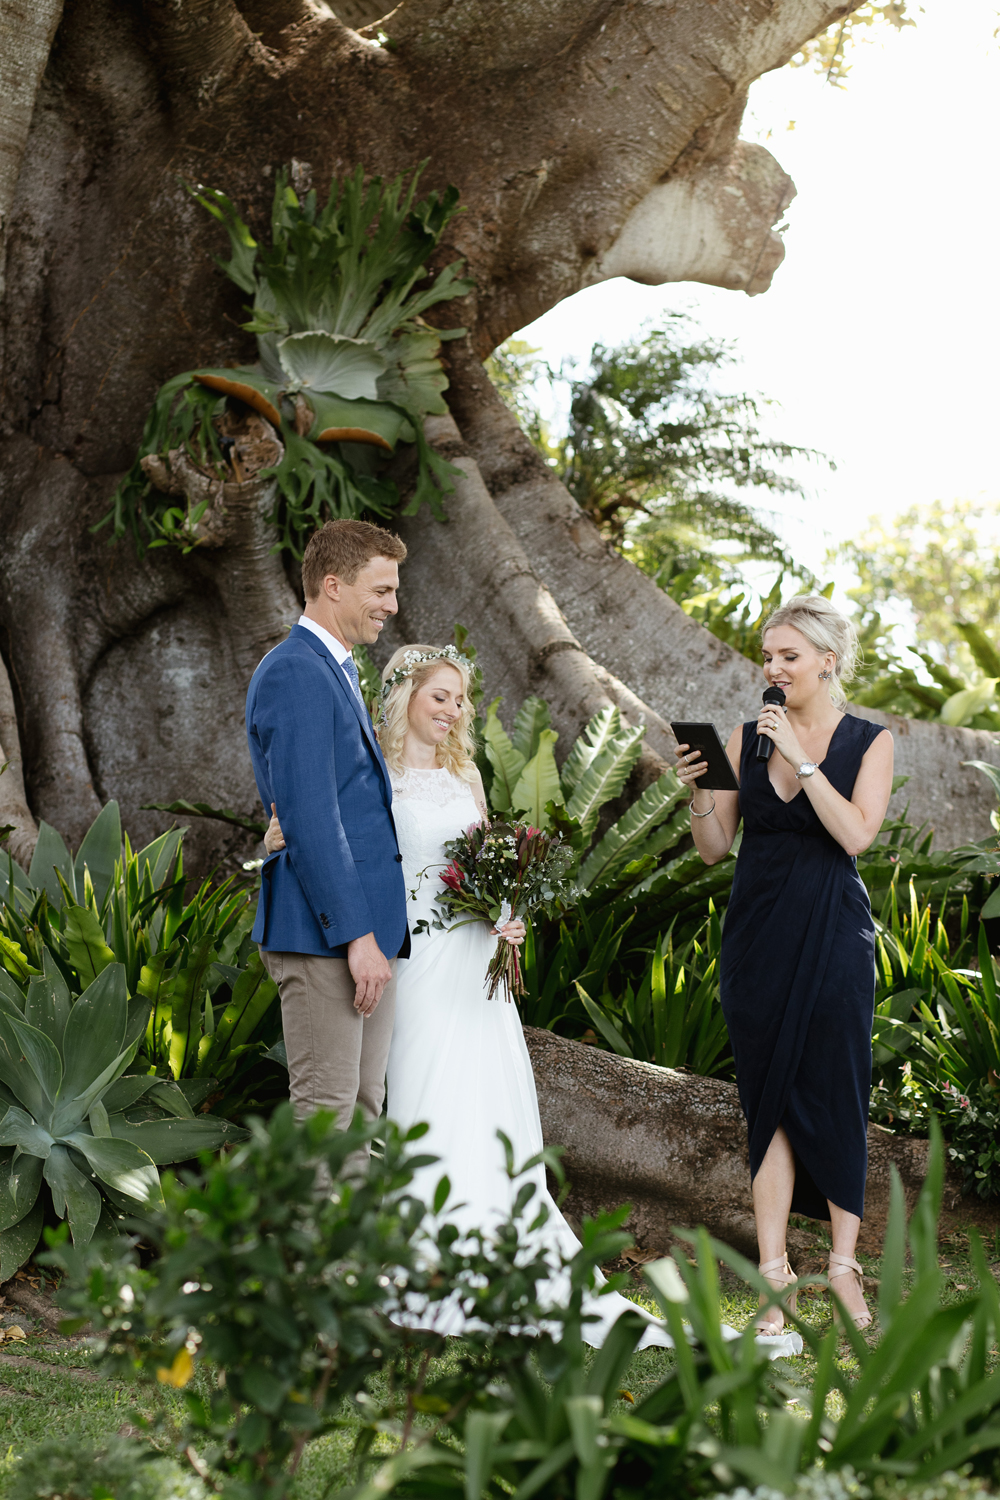 037-Byron-Bay-Wedding-Photographer-Carly-Tia-Photography.jpg